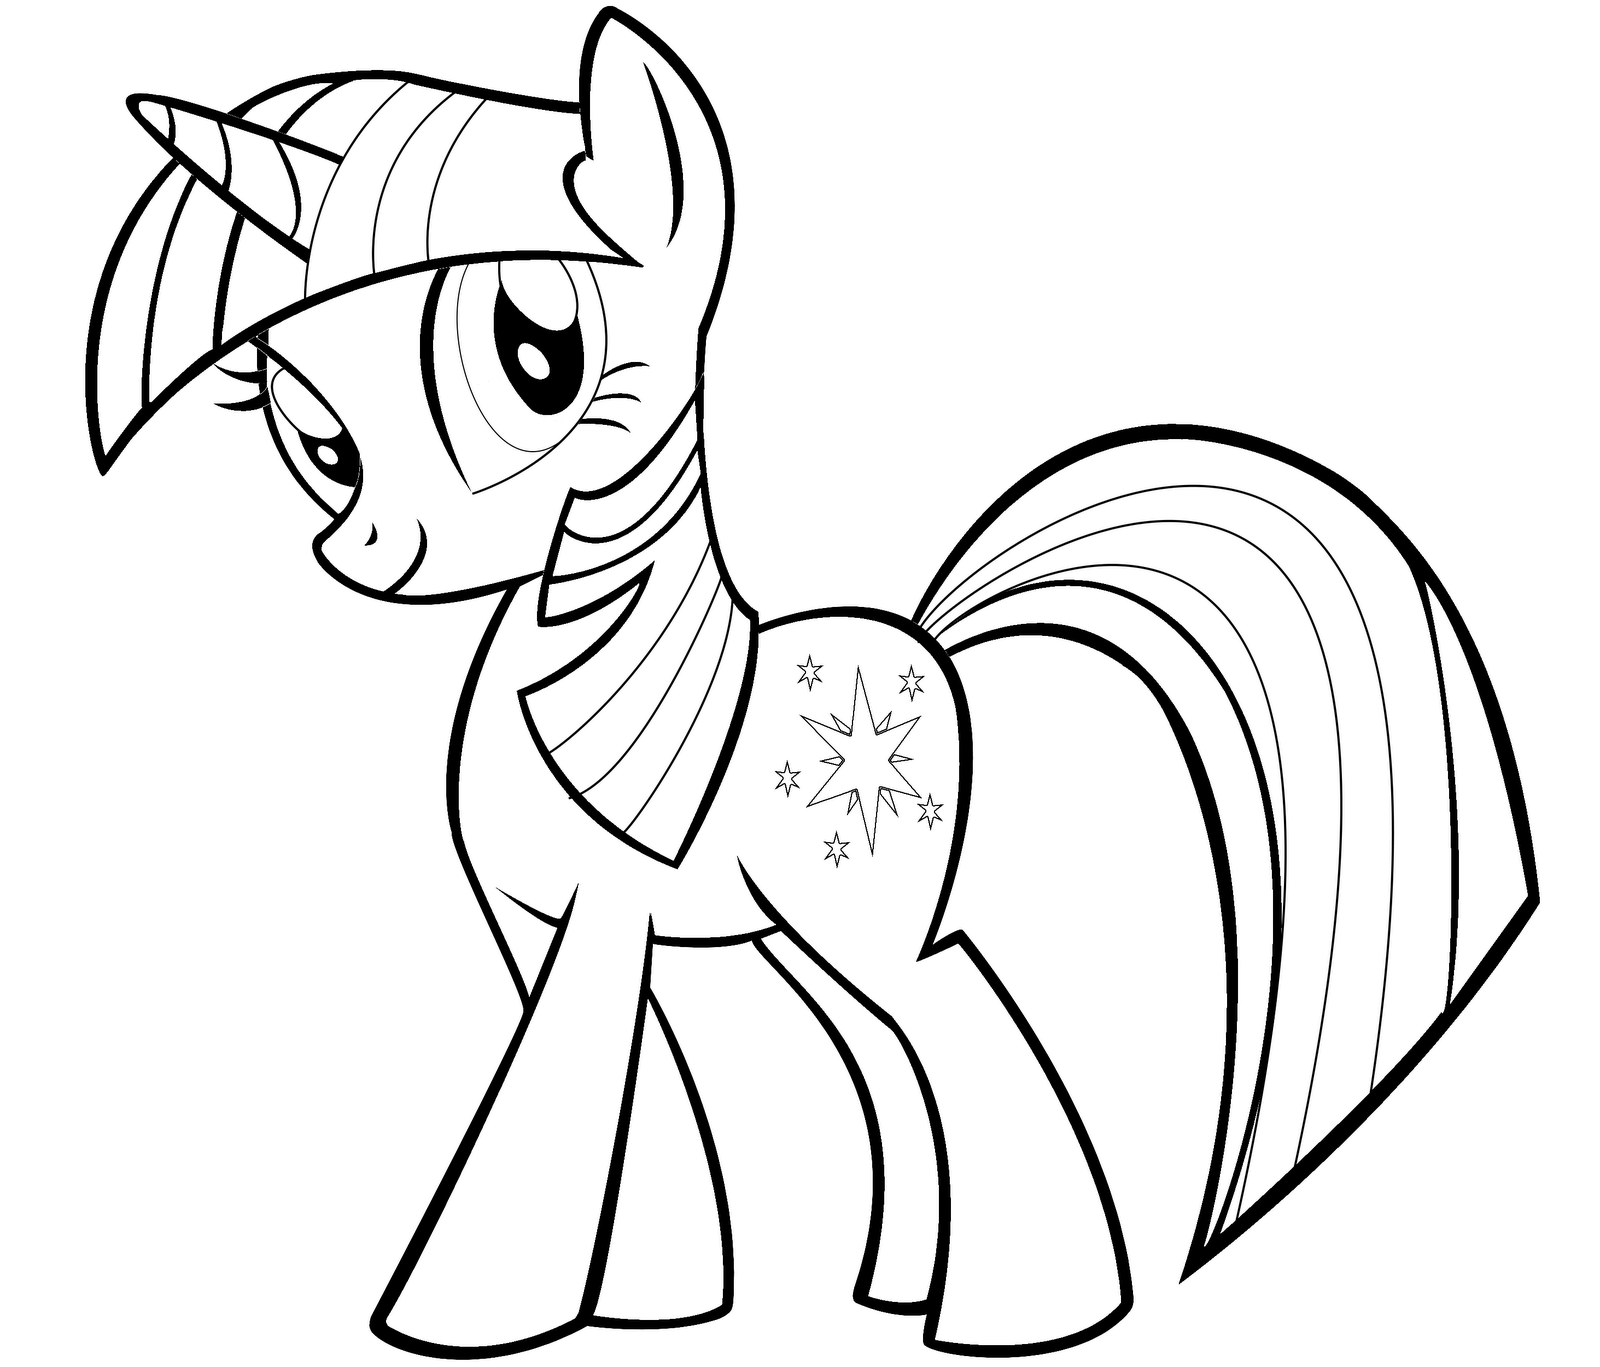 my little pony coloring pages twilight sparkle twilight sparkle coloring pages best coloring pages for kids my pages pony twilight coloring sparkle little